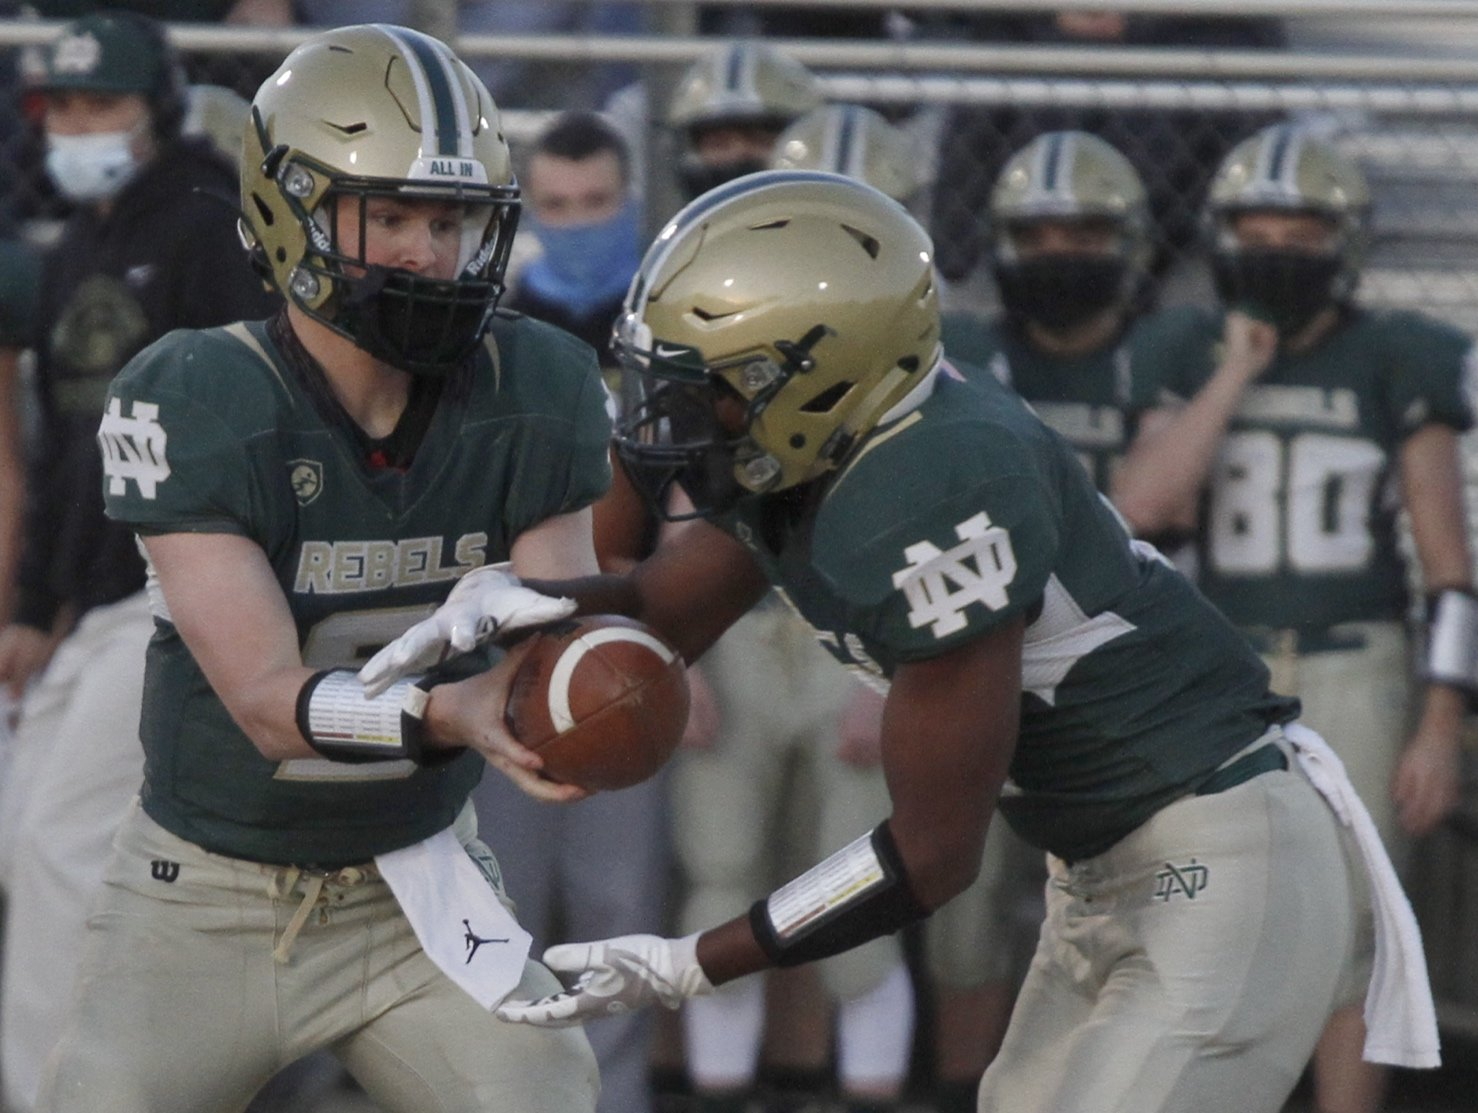 North Duplin quarterback Gage Outlaw (left) hands the ball off to freshman running back DuJuan Armwood on the first play from scrimmage during their game against Jones Senior on Thursday evening. Armwood rushed for 169 yards in the Rebels' 49-16 victory.